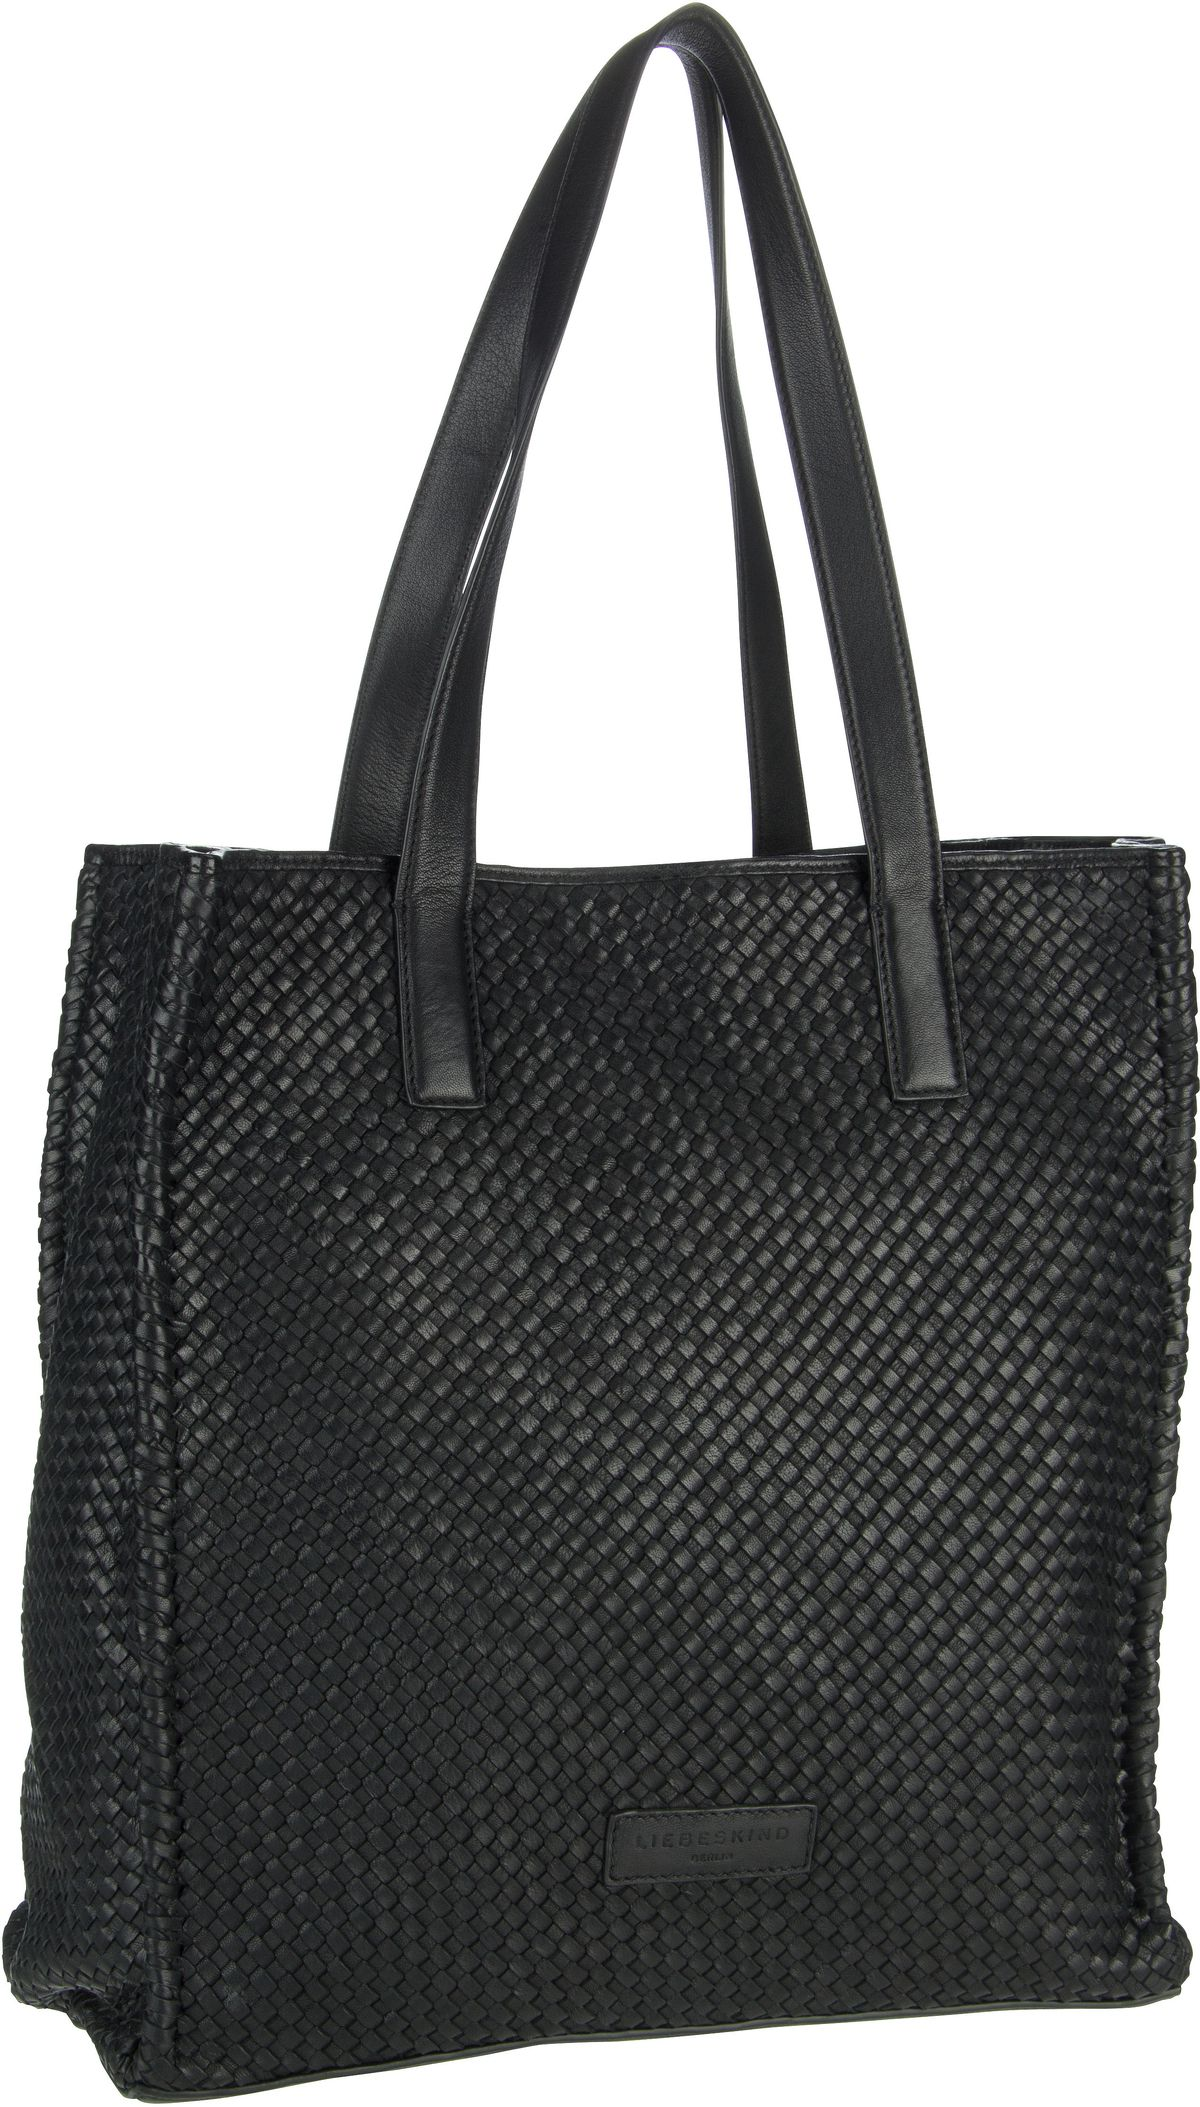 Berlin Handtasche Santa Fe Shopper XL Black